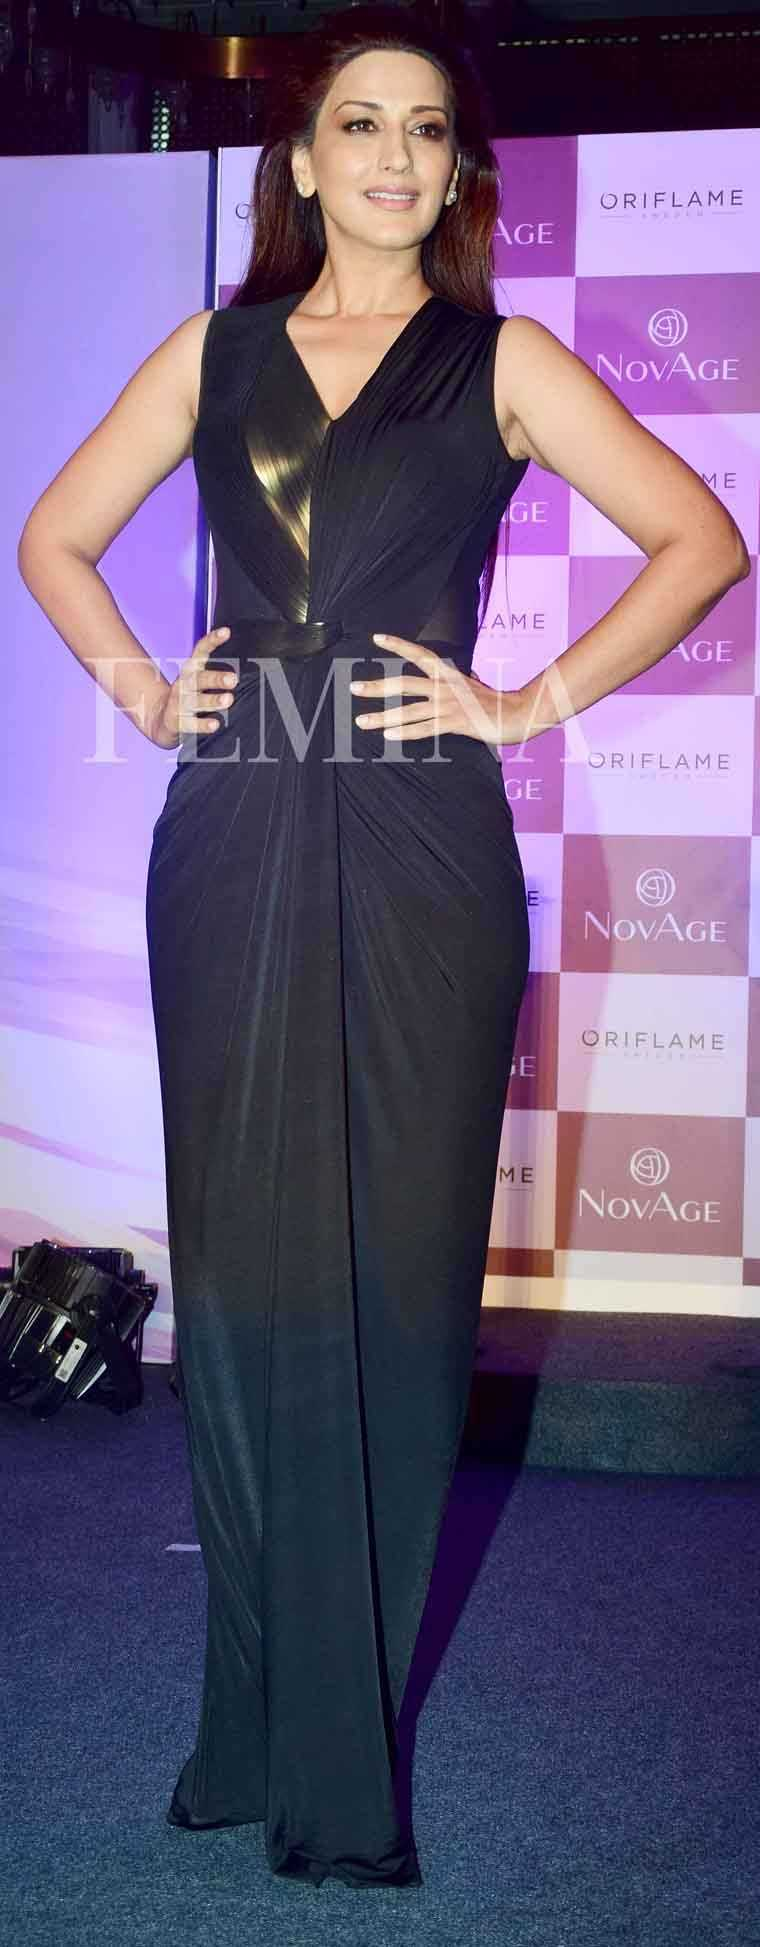 Sonali Bendre just knows how to work a statement gown. She kept the rest of the look simple so that the focus stays on her draped Amit Aggarwal number.